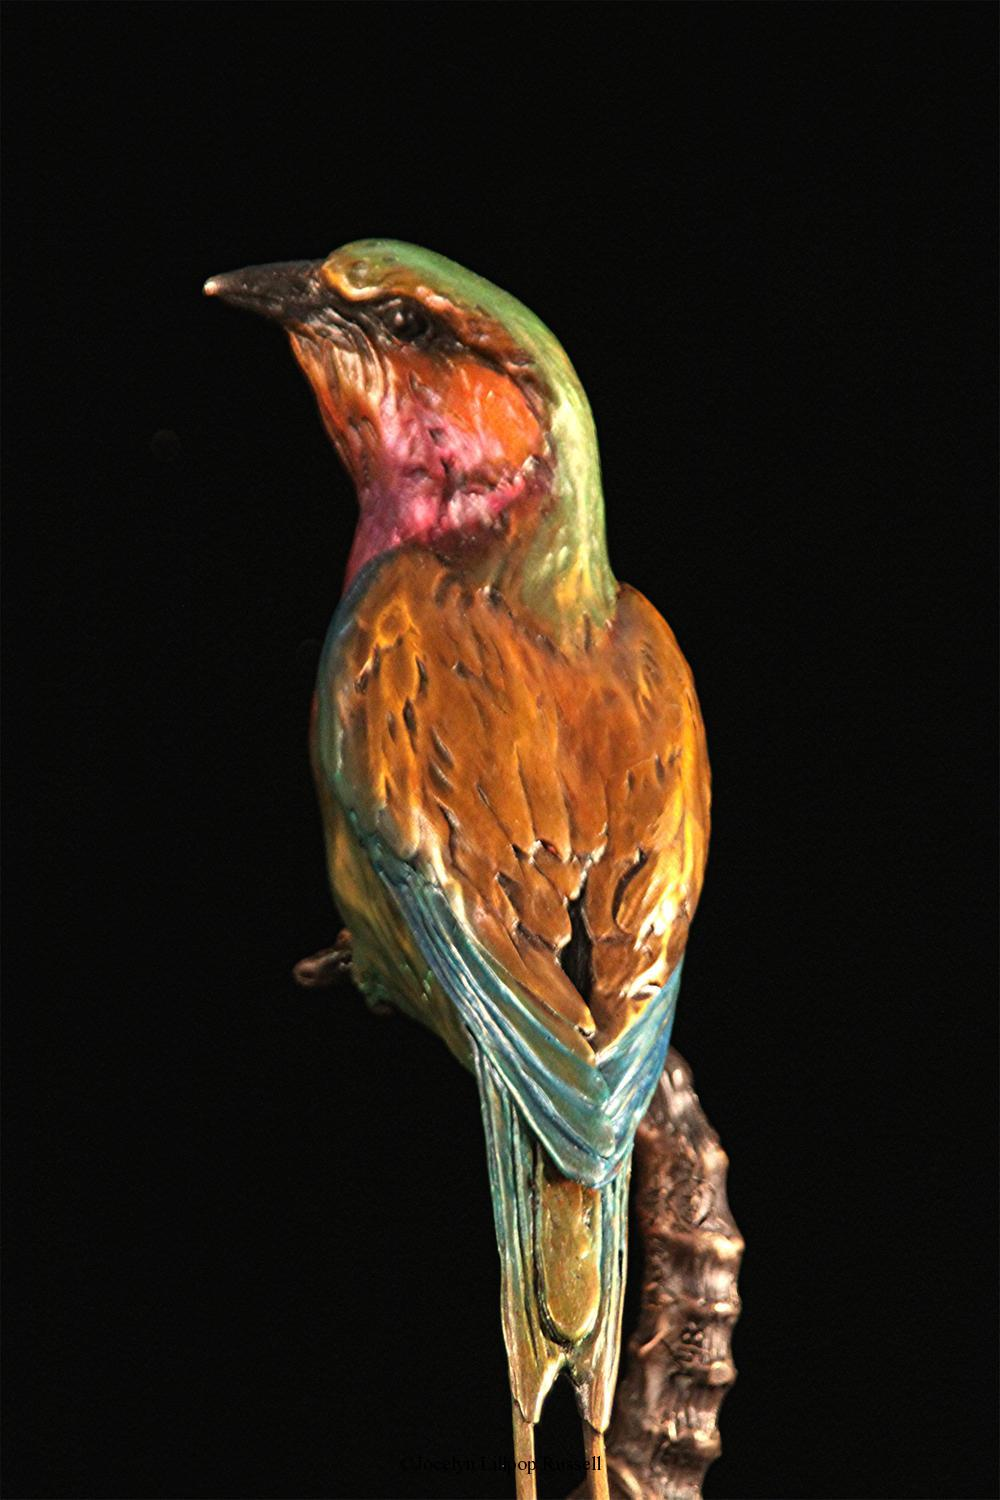 African Jewel- Lilac-breasted Roller